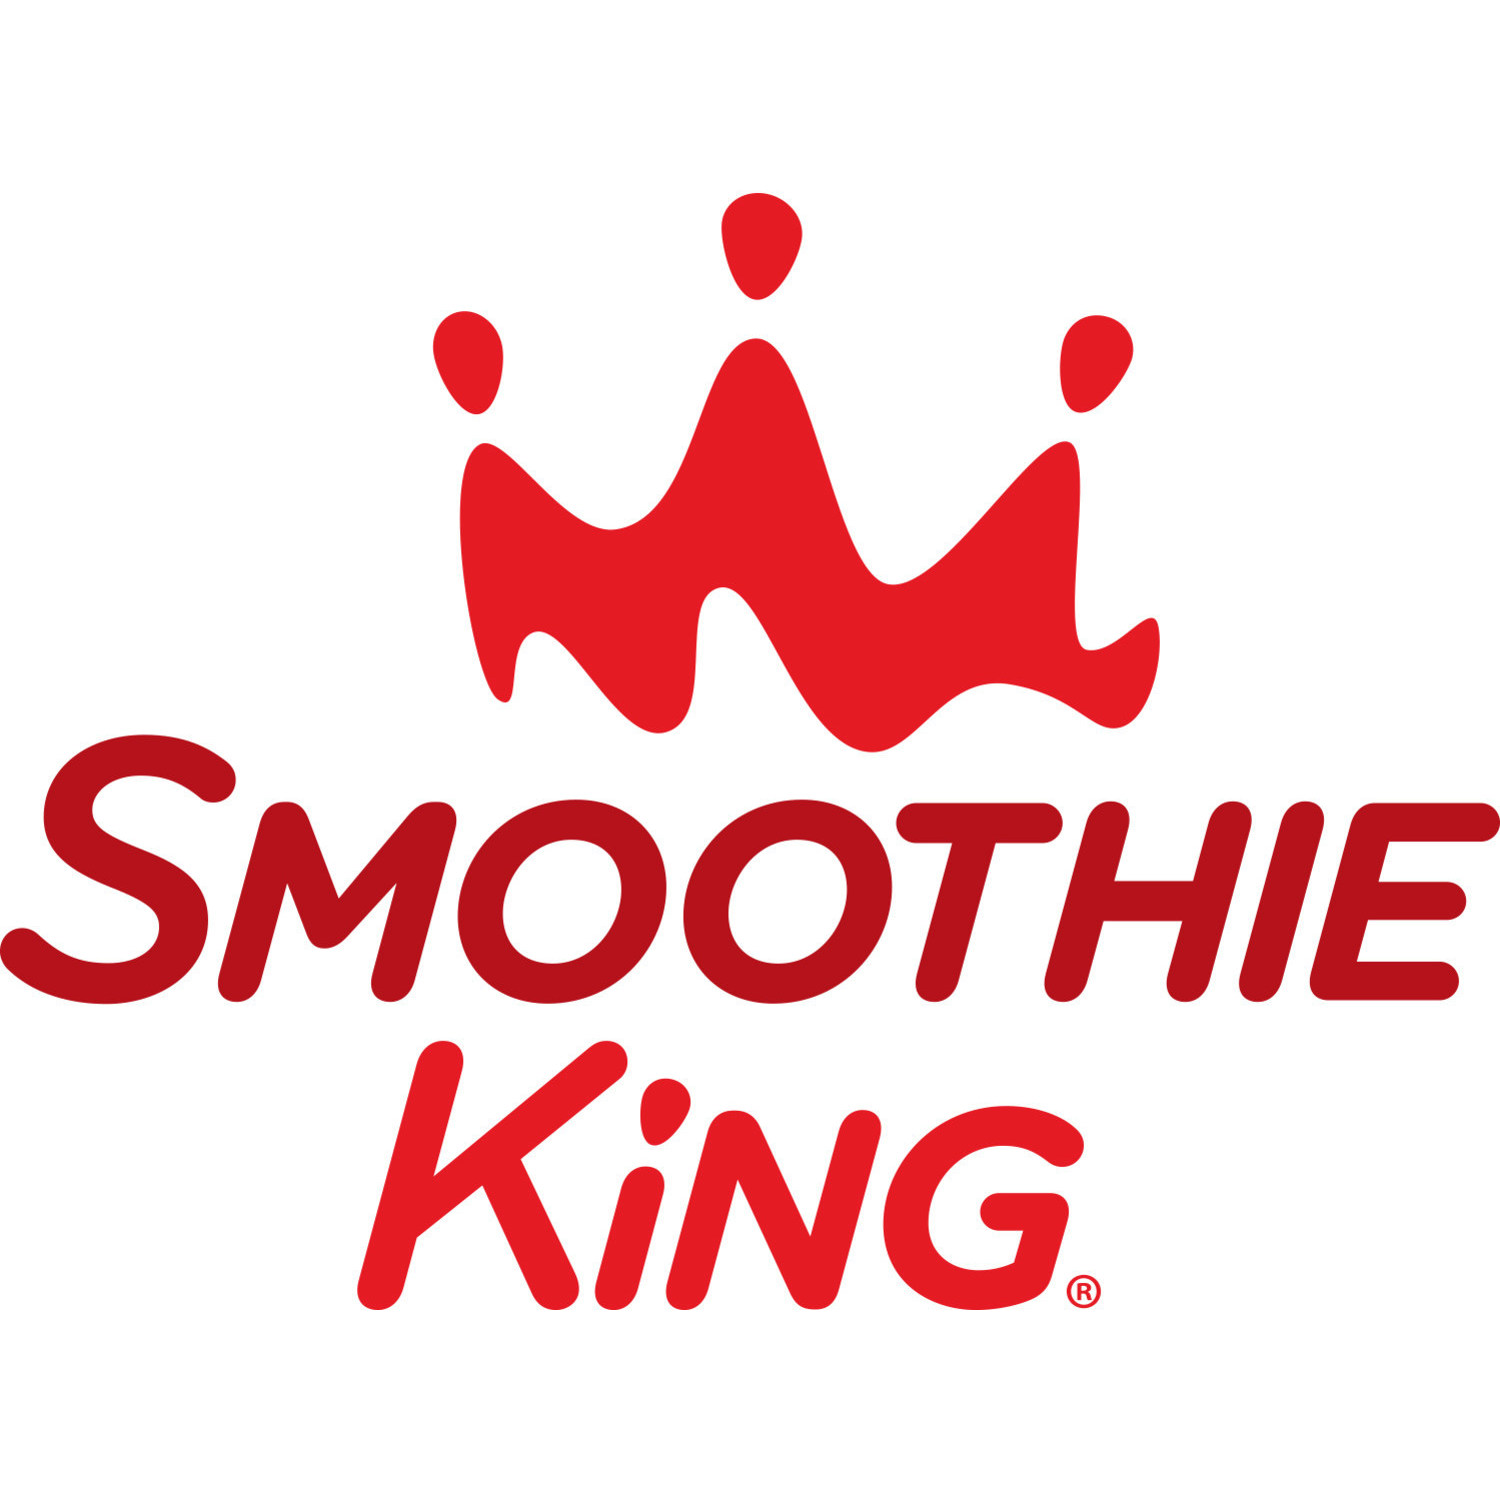 Smoothie King Creates 'Daily Warrior' Smoothie In Collaboration With.